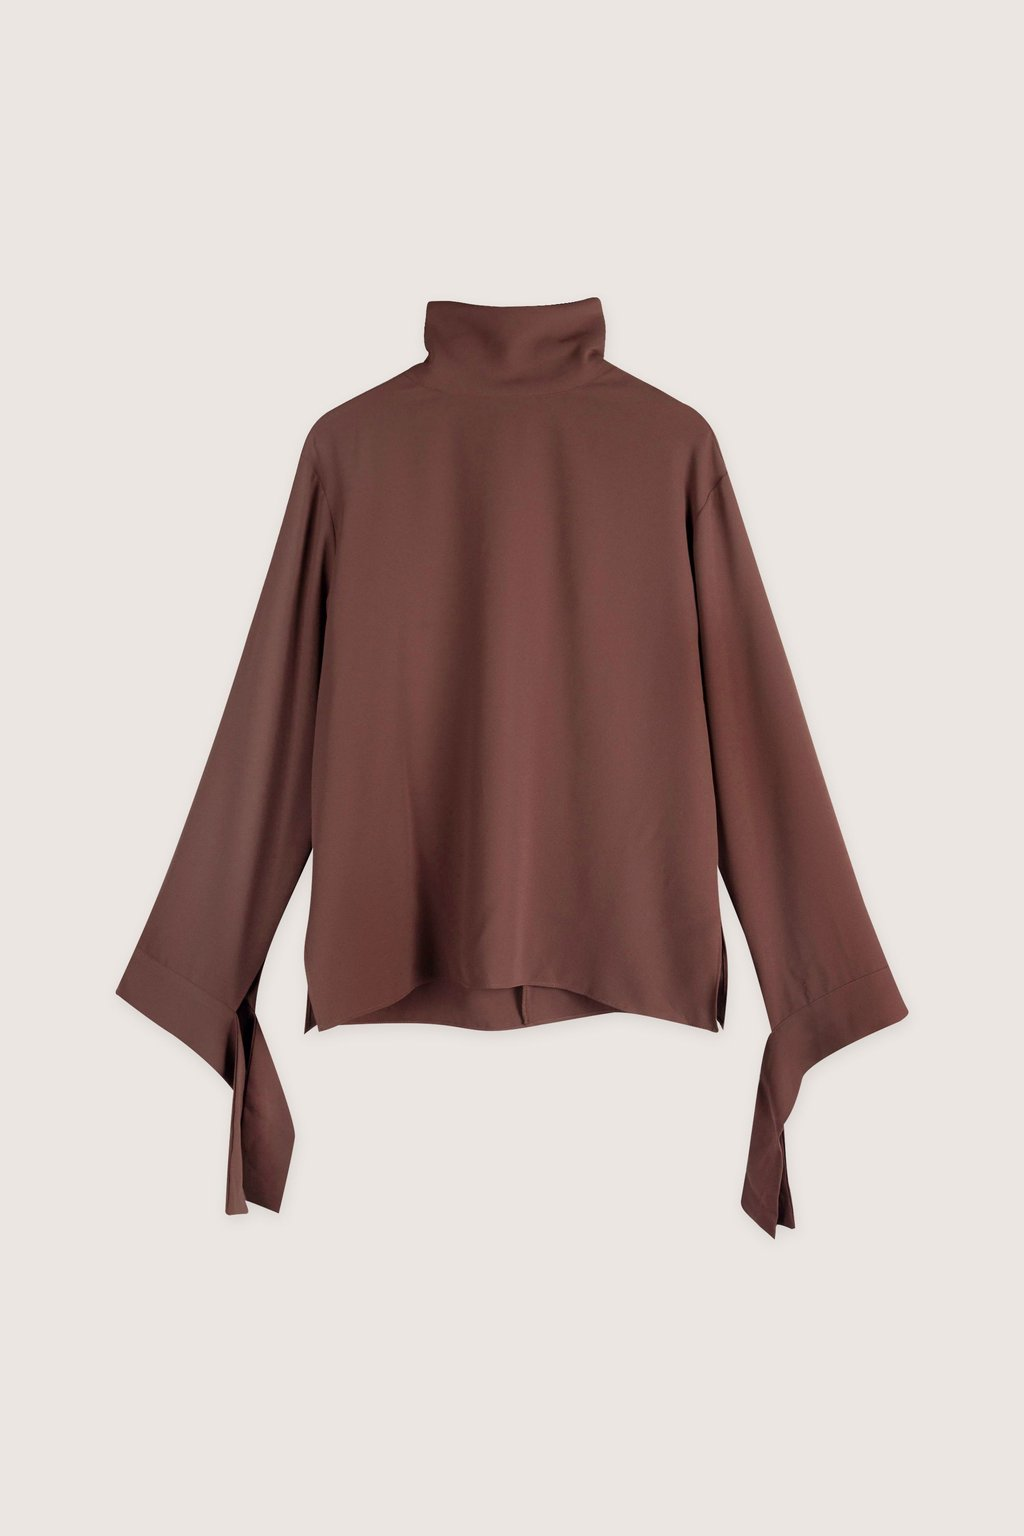 Blouse H323 Brown 7